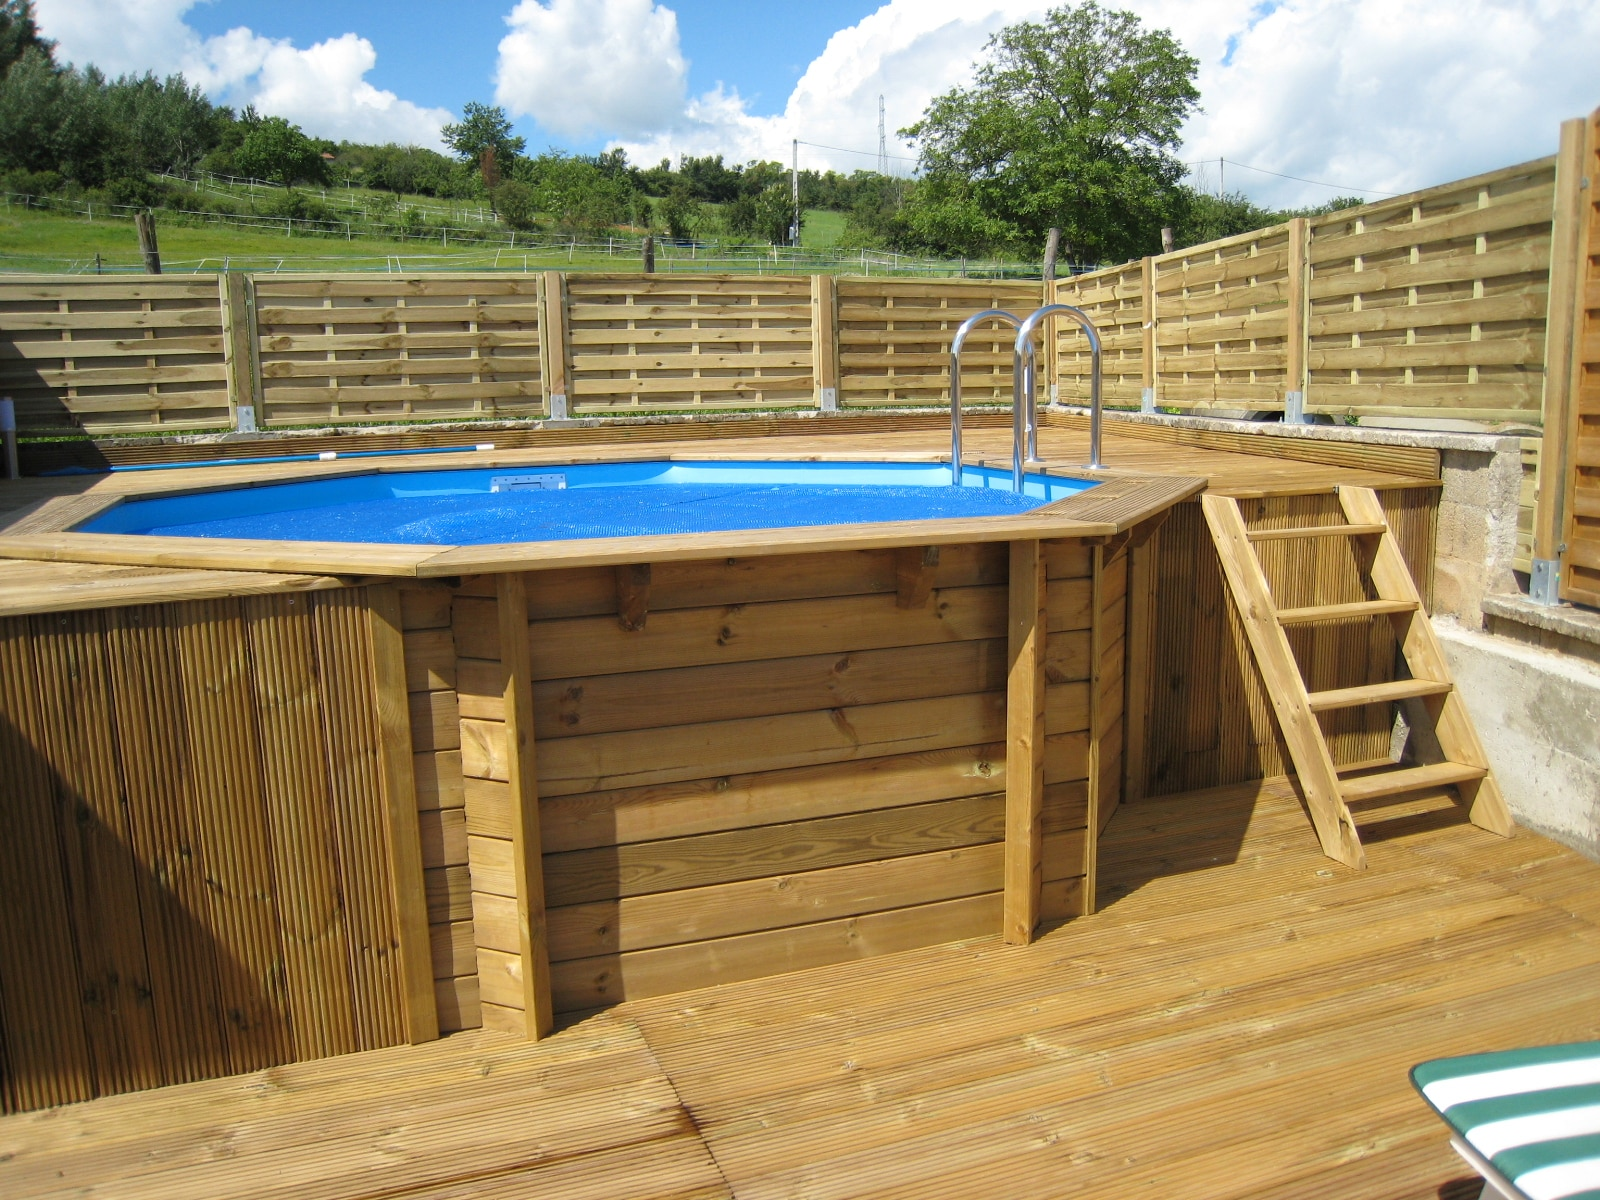 Comment monter une piscine en bois for Piscine semi enterree bois hexagonale